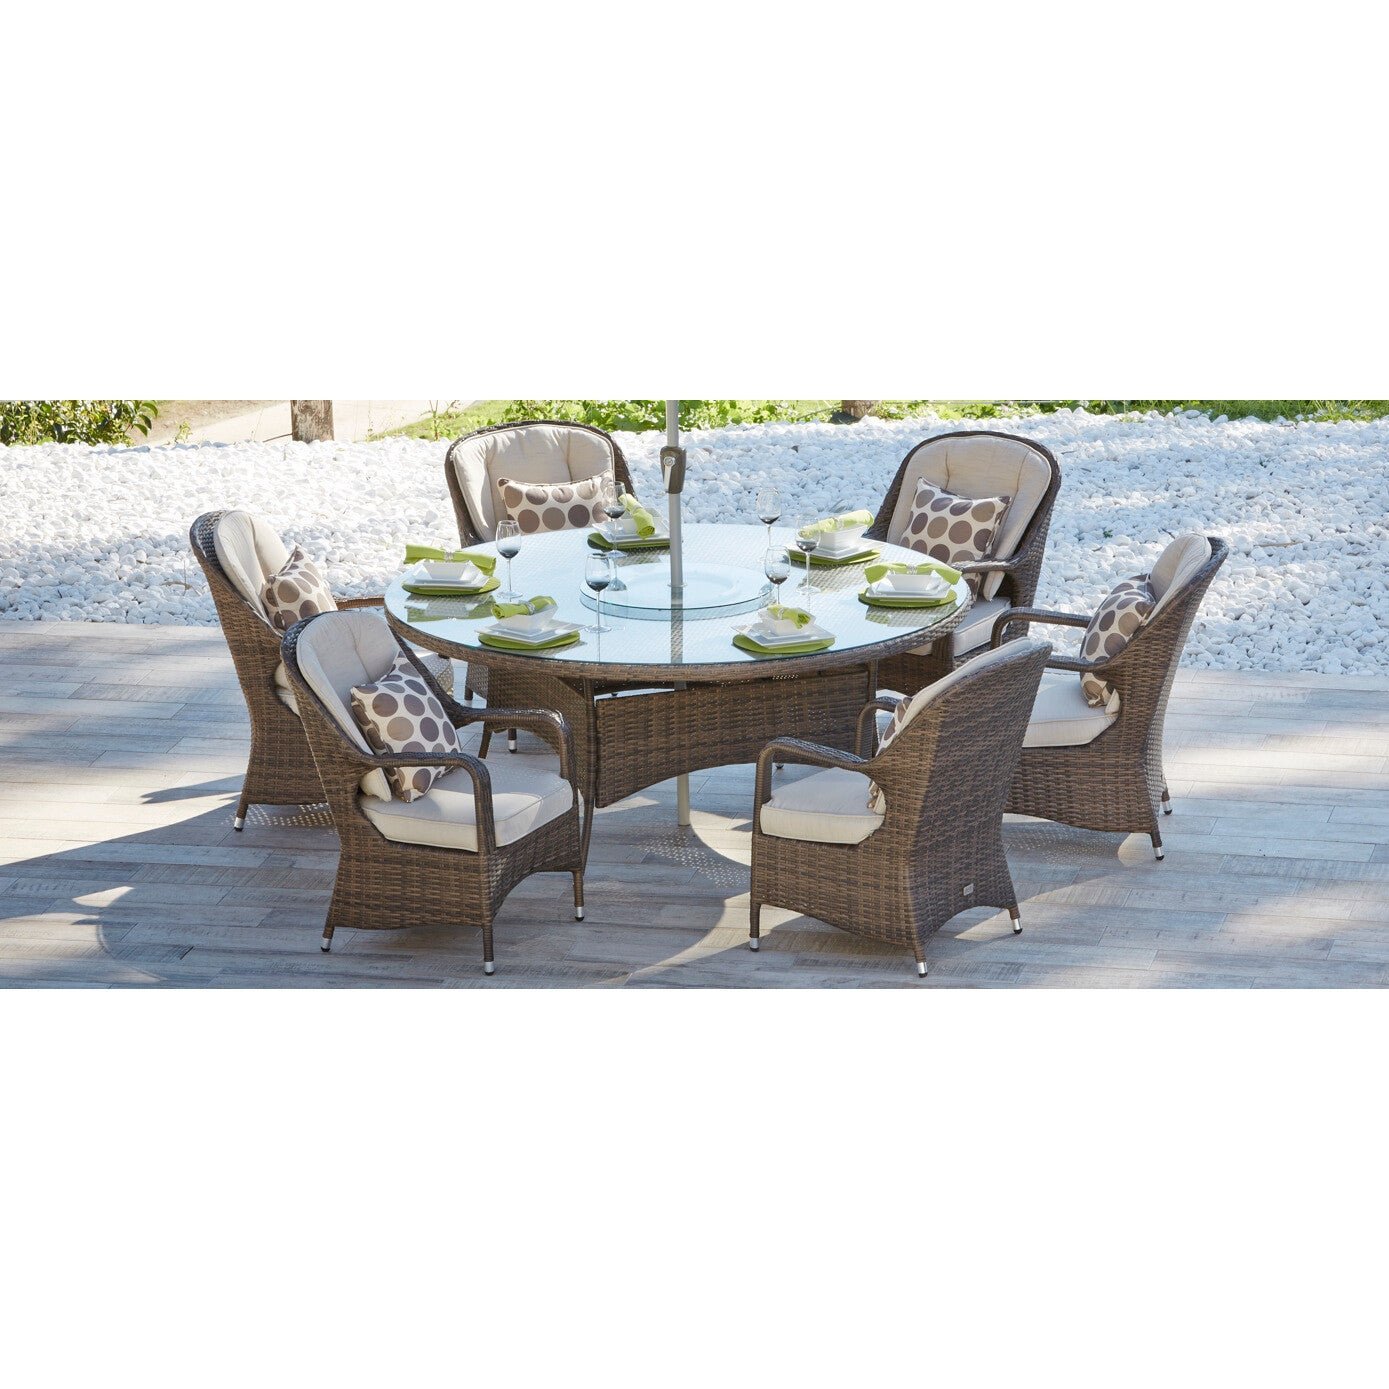 Shop Puerta Outdoor Garden 6-seat Brown Wicker Dining Set with Lazy Susan by Direct Wicker - On Sale - Free Shipping Today - Overstock.com - 16629703  sc 1 st  Overstock.com & Shop Puerta Outdoor Garden 6-seat Brown Wicker Dining Set with Lazy ...